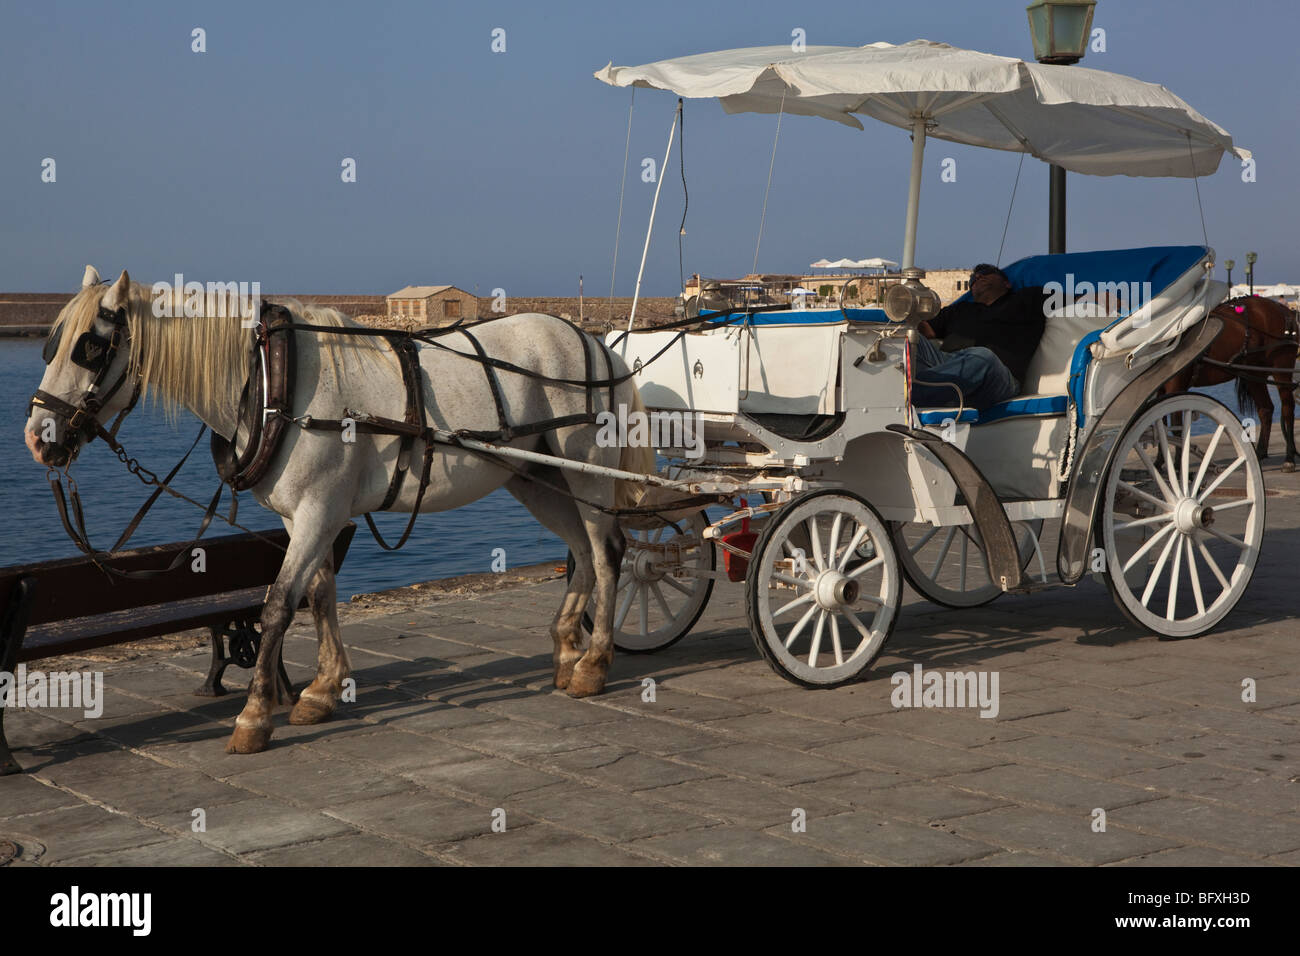 A tourist horse and cart with a reposing driver in the afternoon sun - Stock Image